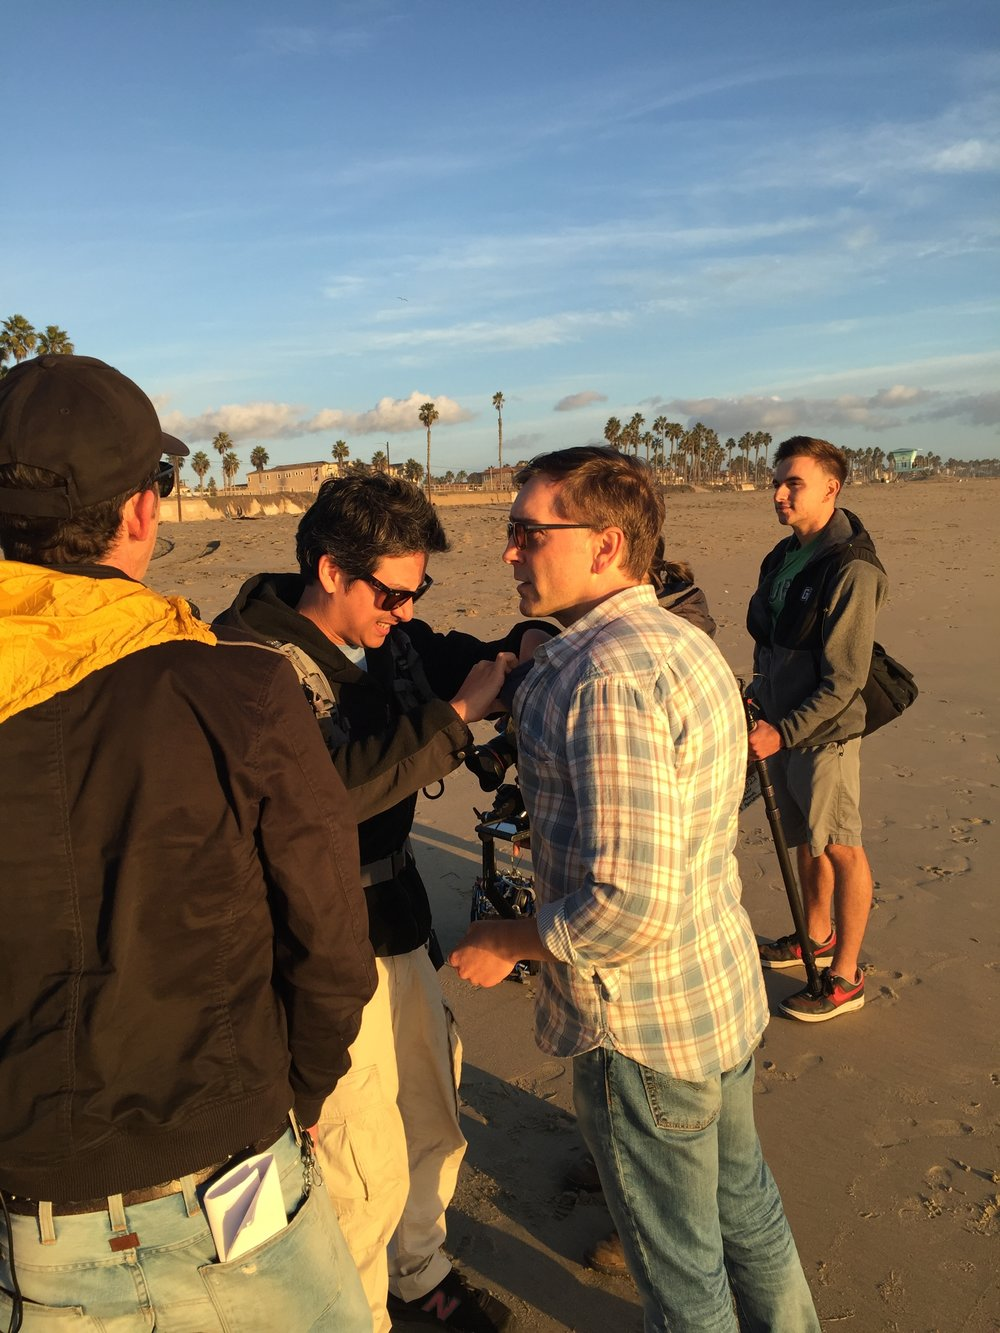 12/13/15 Sunset Beach Scene Scene. L to R: Monty Miranda (Dir.), Kevin Rosen-Quan (Sound), Scott Lowell, Ronnie Bourdeau II (A.C.)